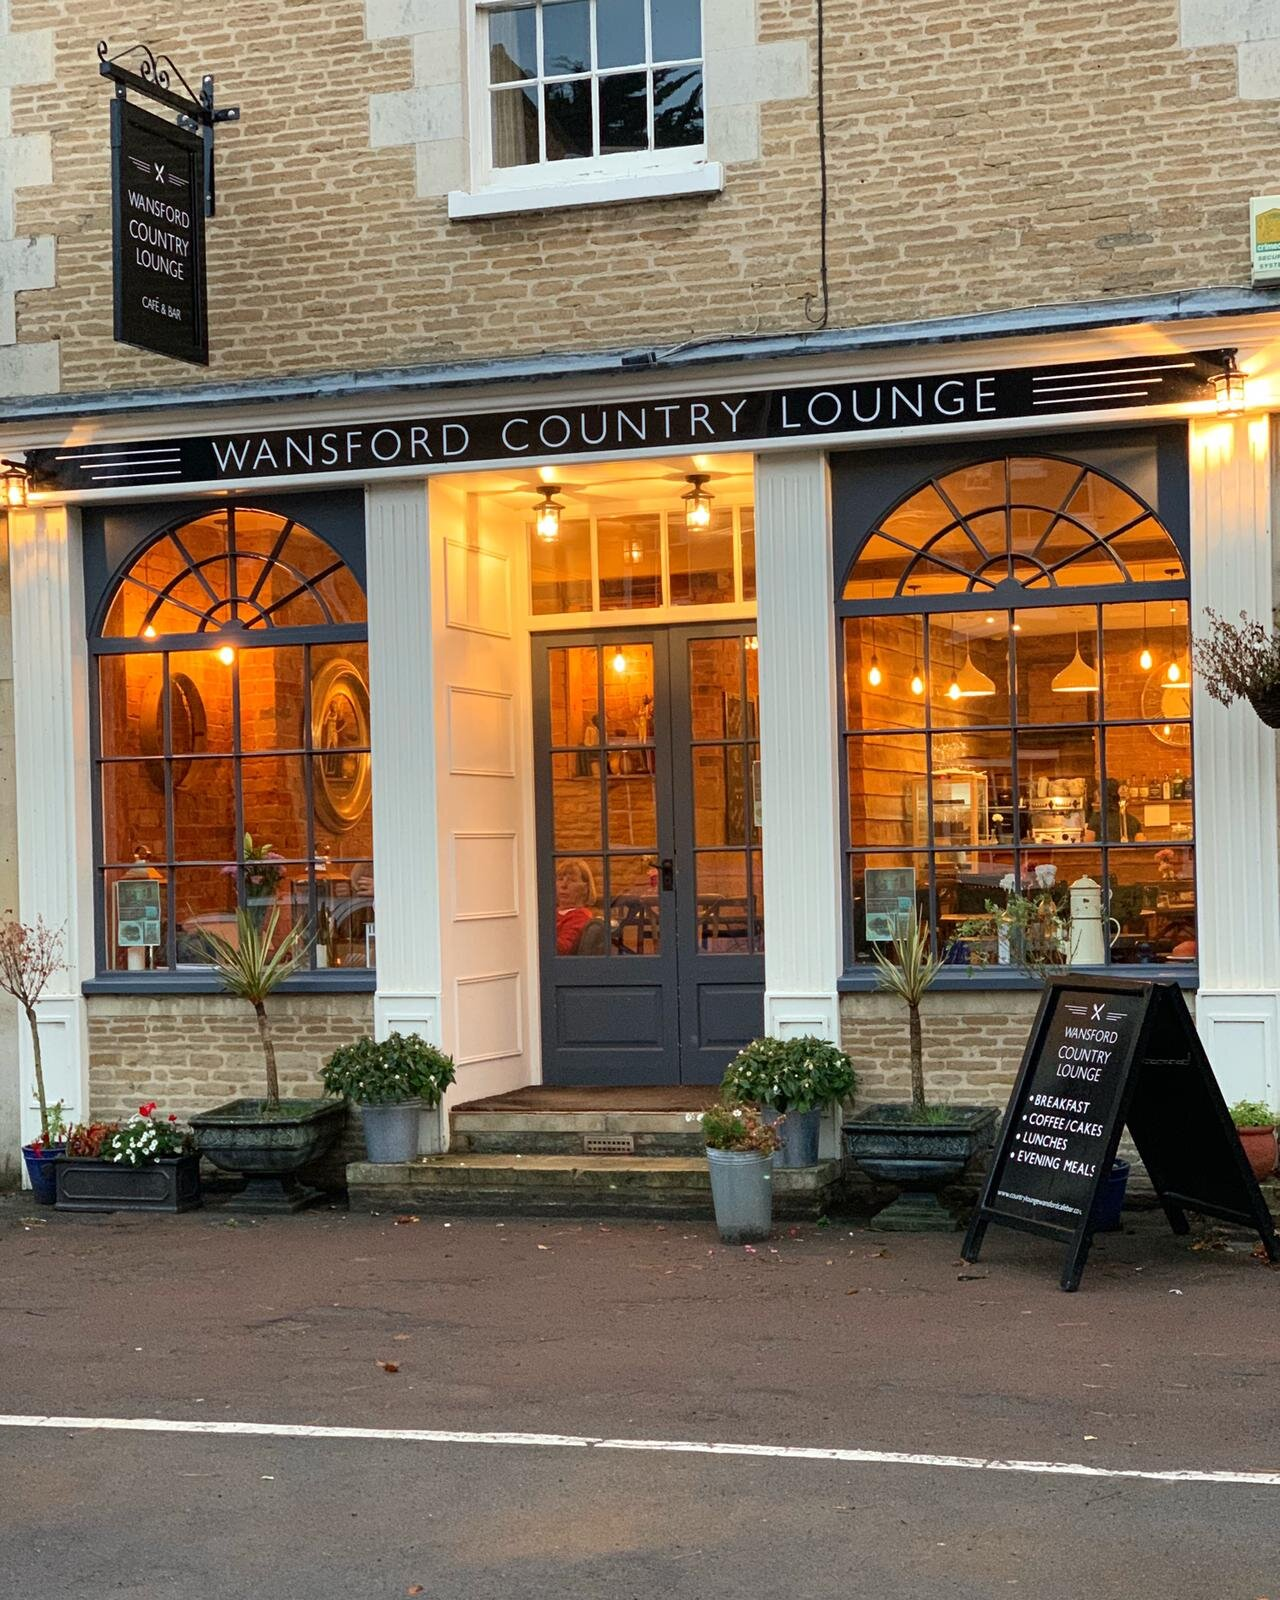 Wansford Country Lounge